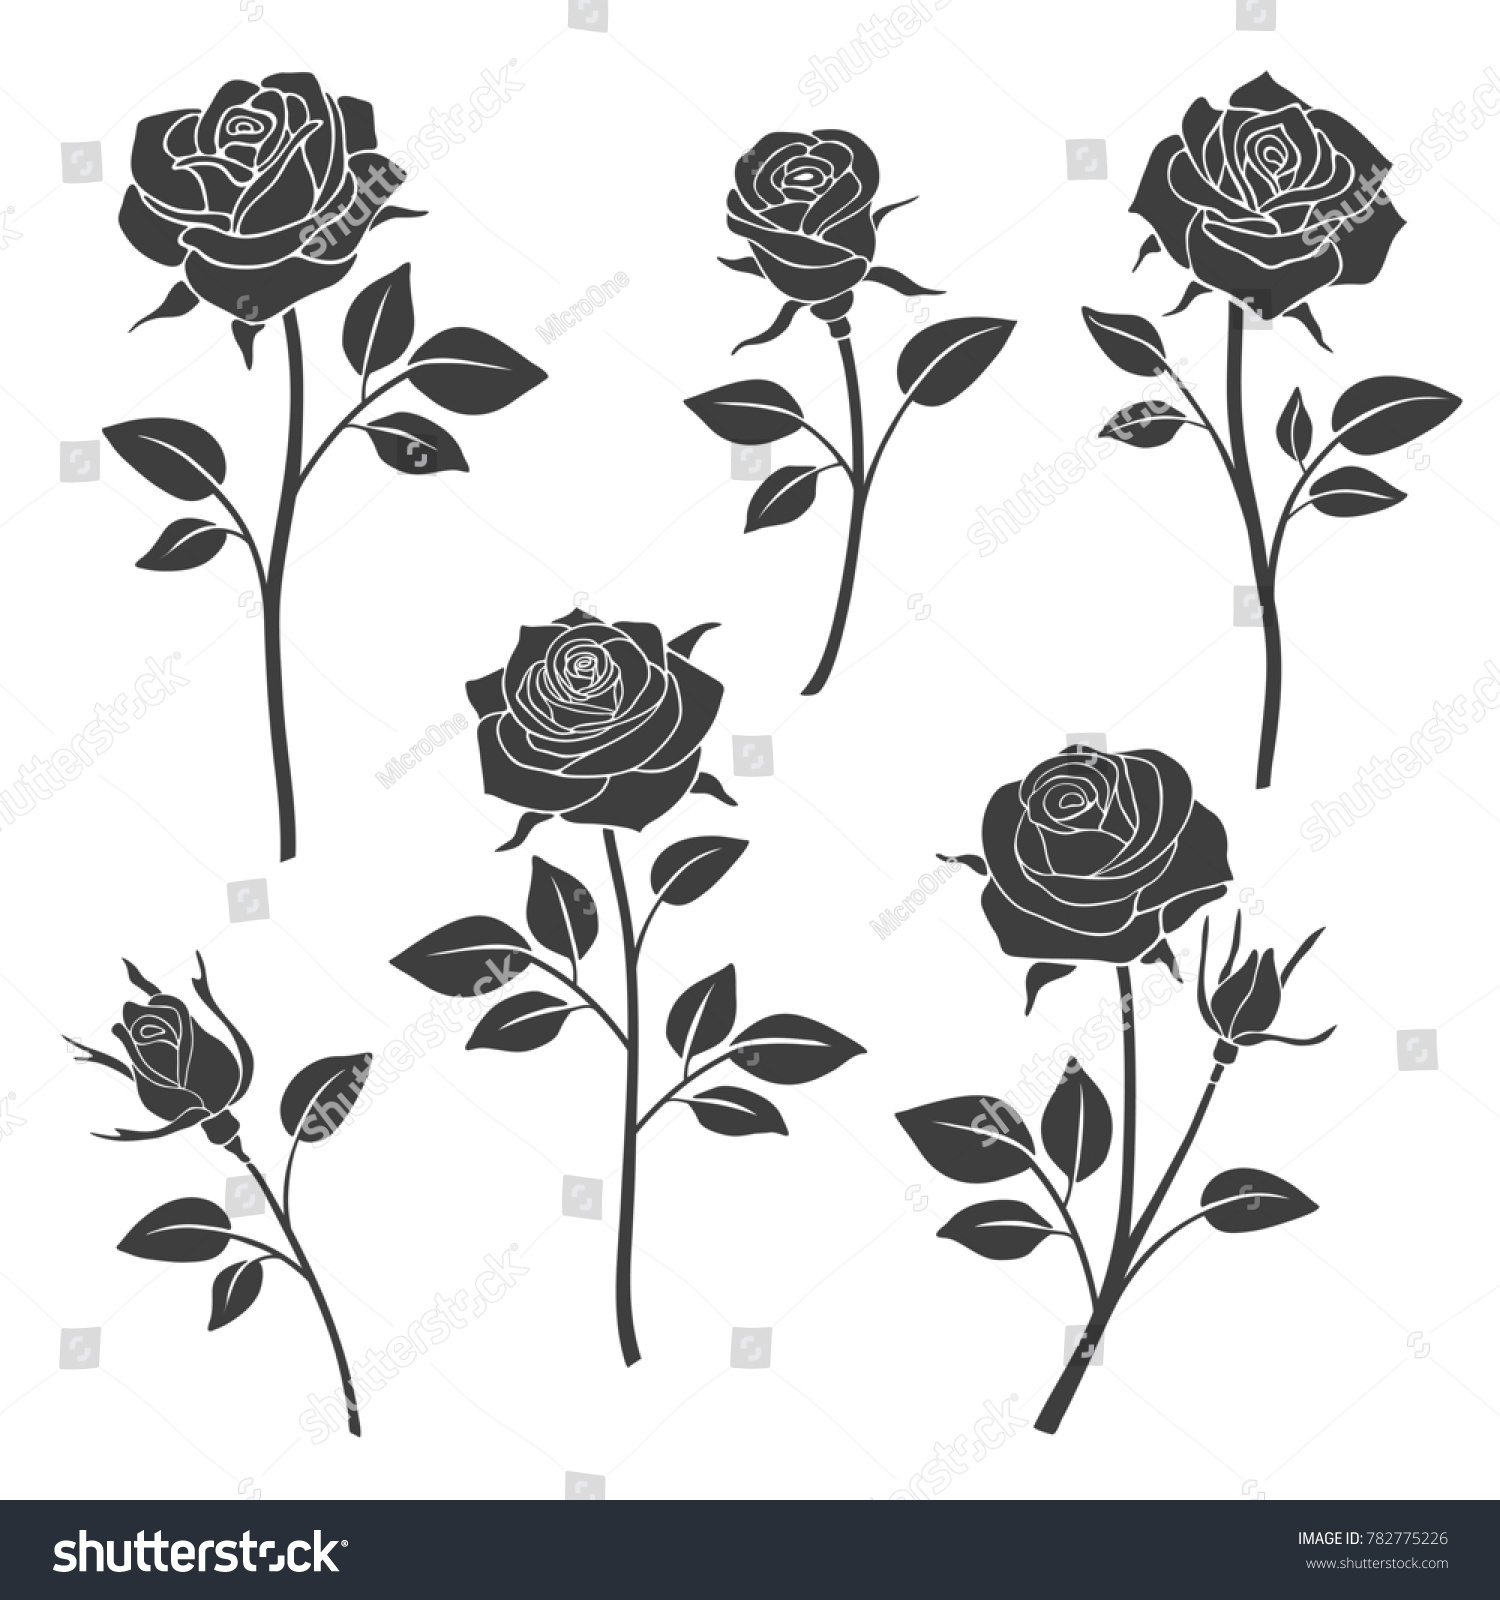 Royalty Free Stock Illustration Of Rose Buds Silhouettes Flowers